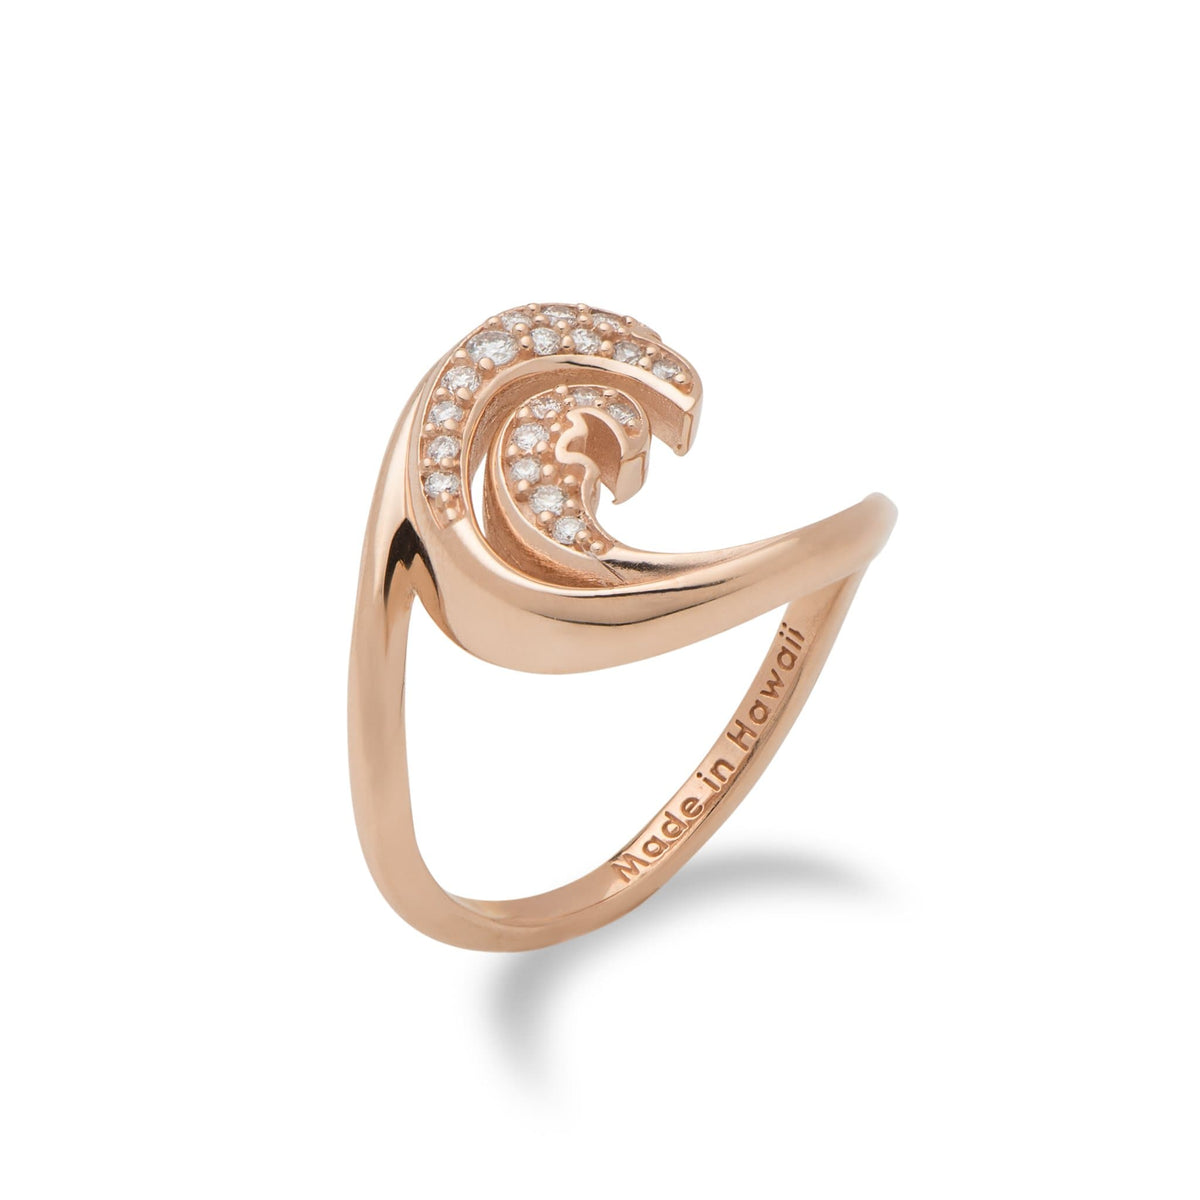 Nalu (Wave) Ring in 14 Rose Gold with Diamonds-100-01840